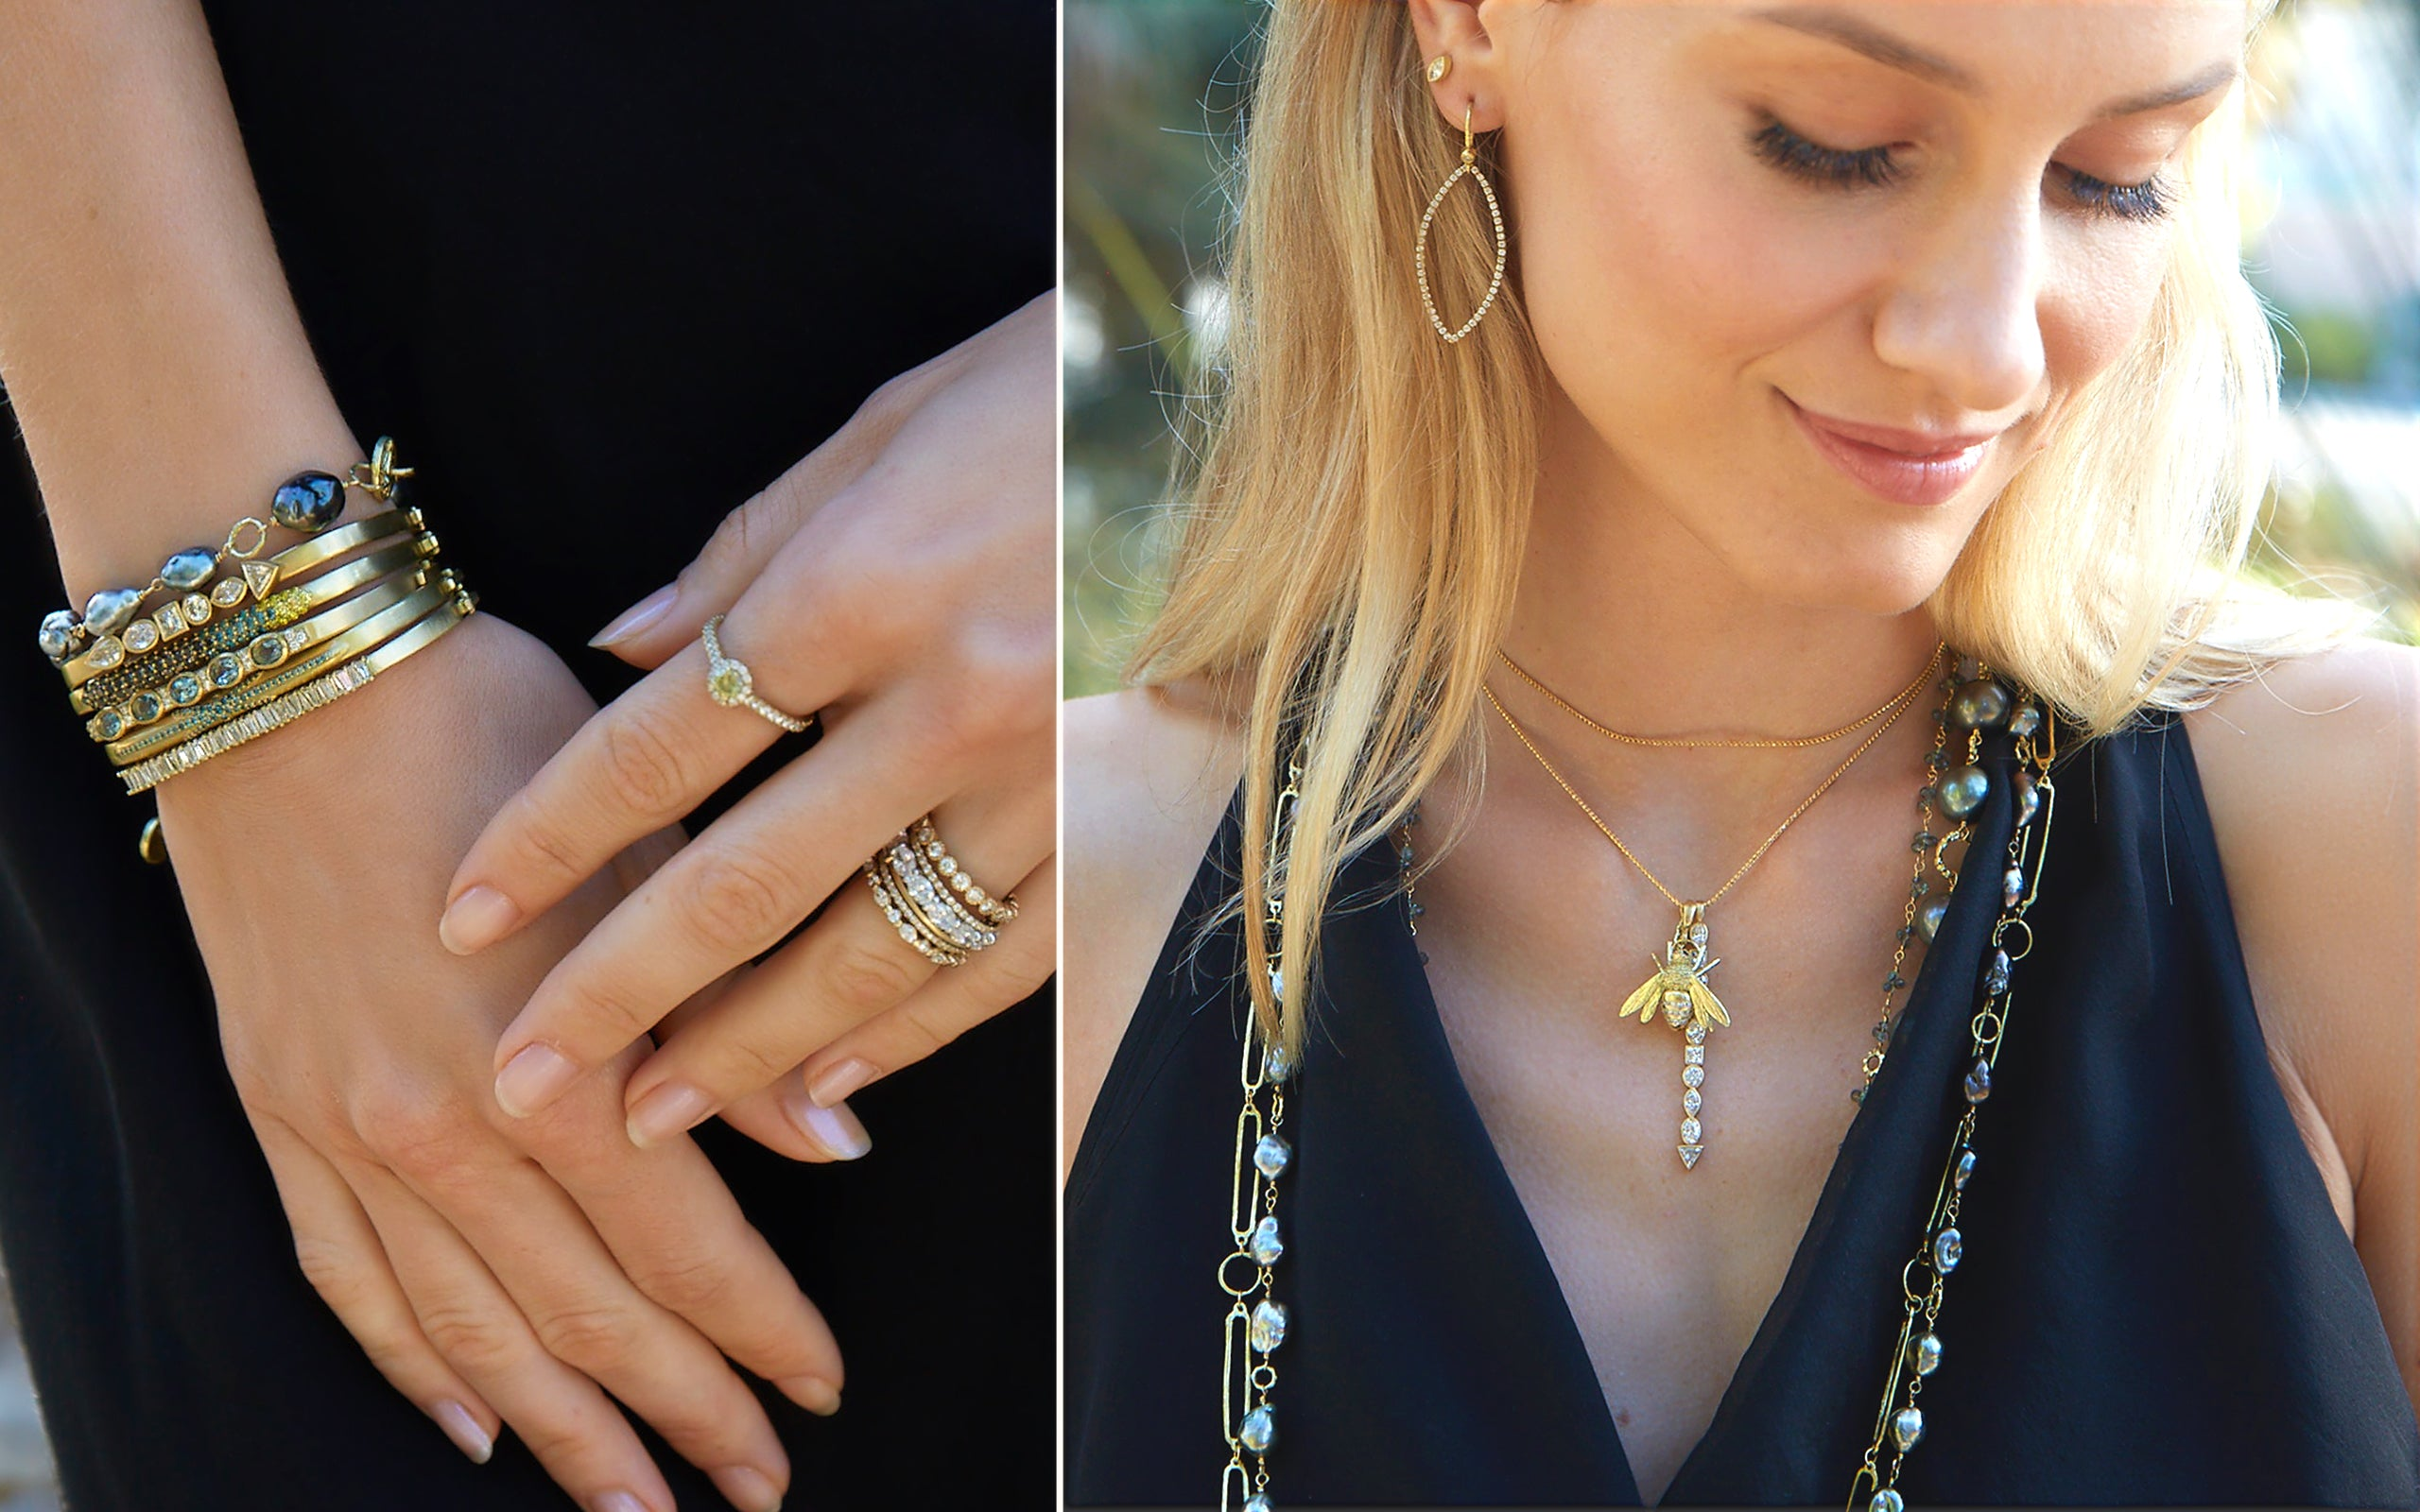 Model wearing our 18-piece yellow gold jewelry collection Beeing There; phone 323-404-2959 if you need shopping assistance.